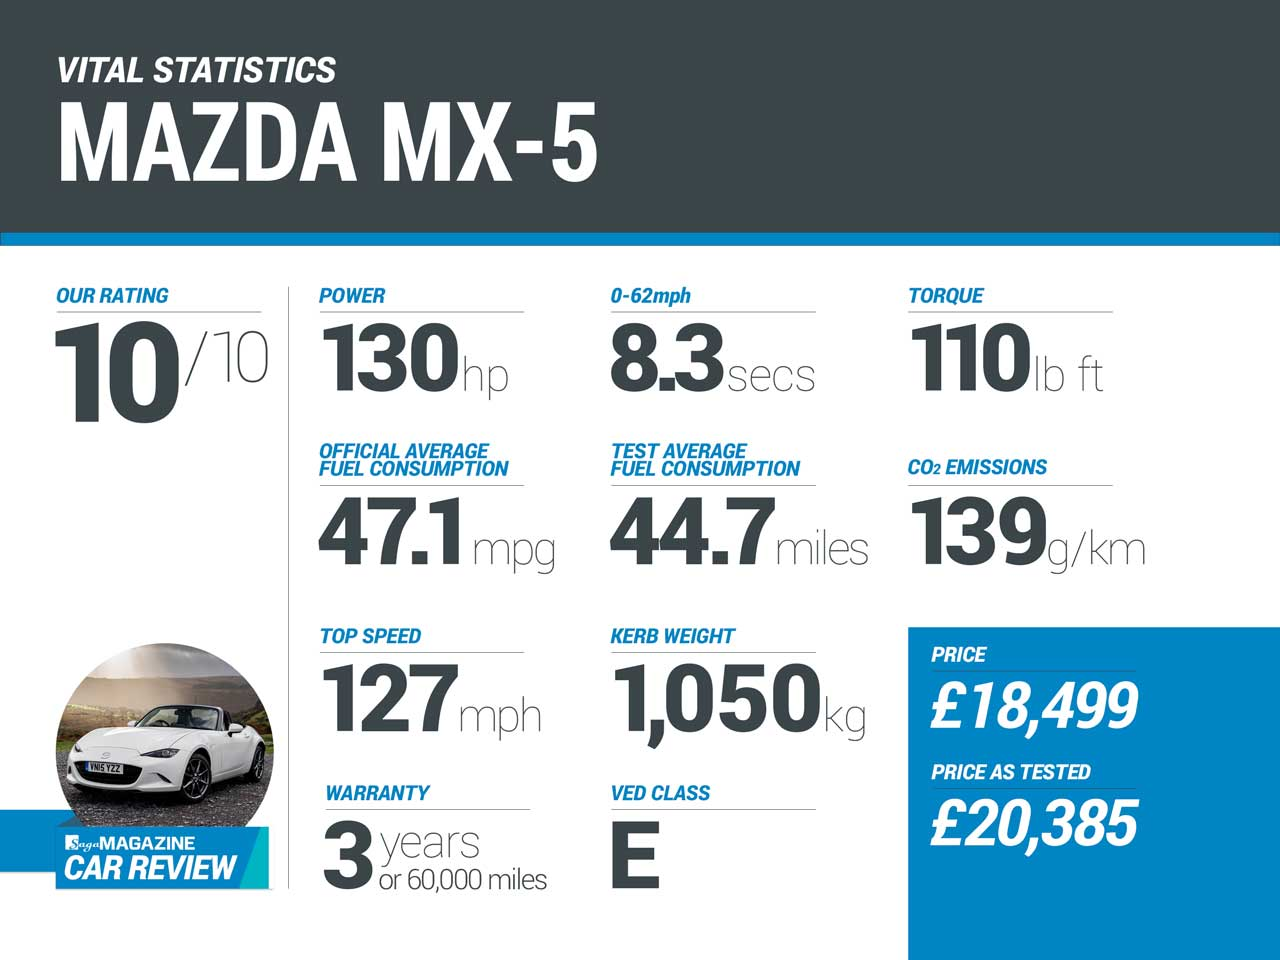 Saga Magazine car review - Mazda MX5 infographic